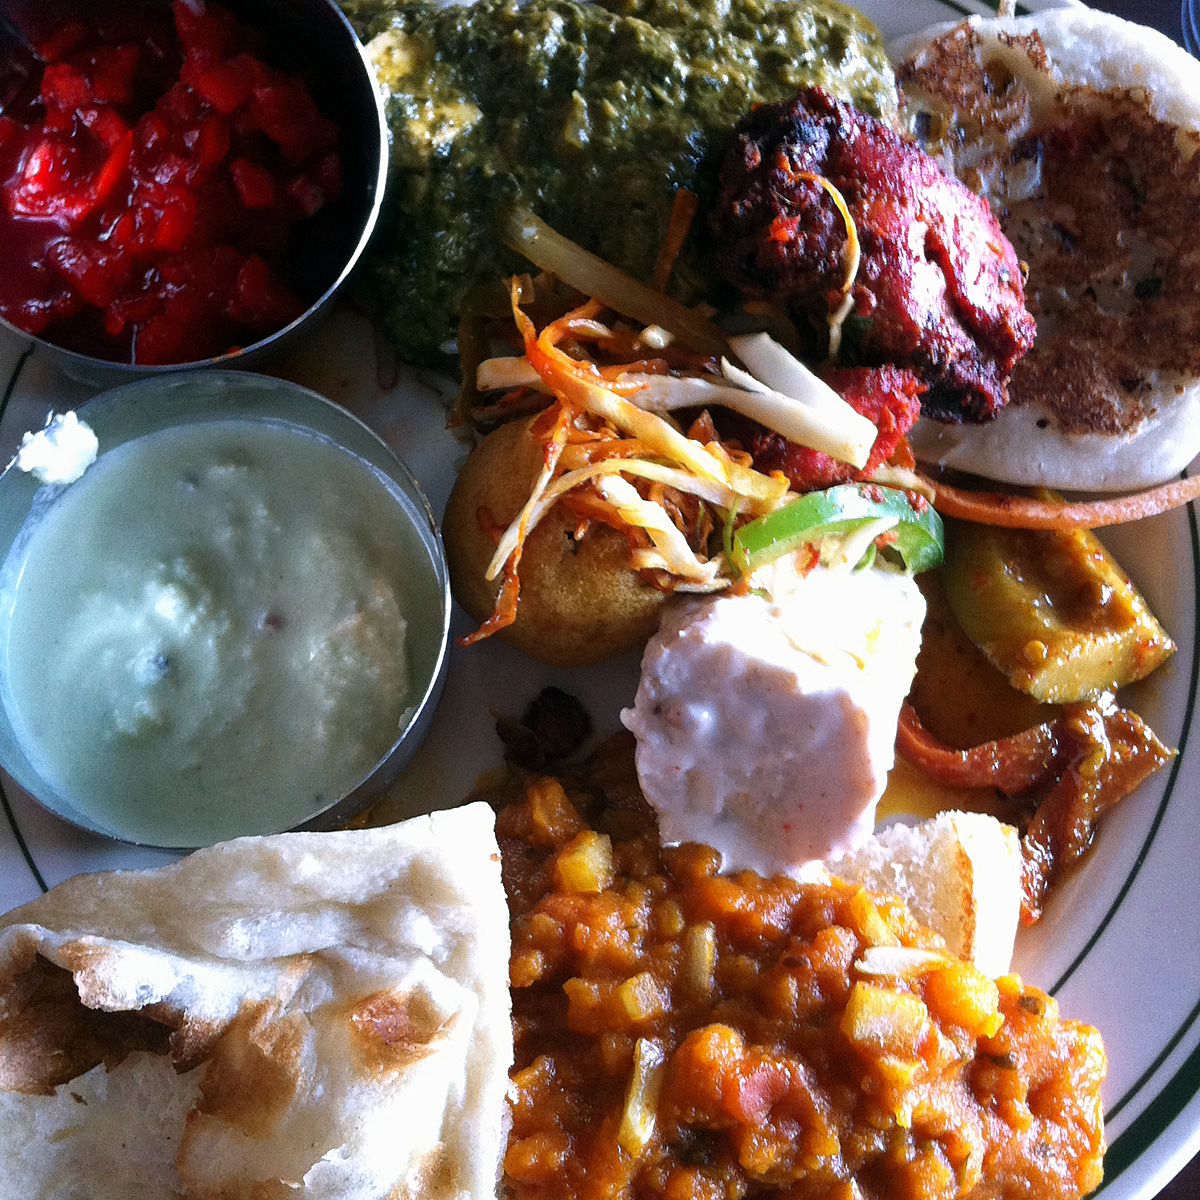 We celebrate Diwali and diversity at Bombay Grill